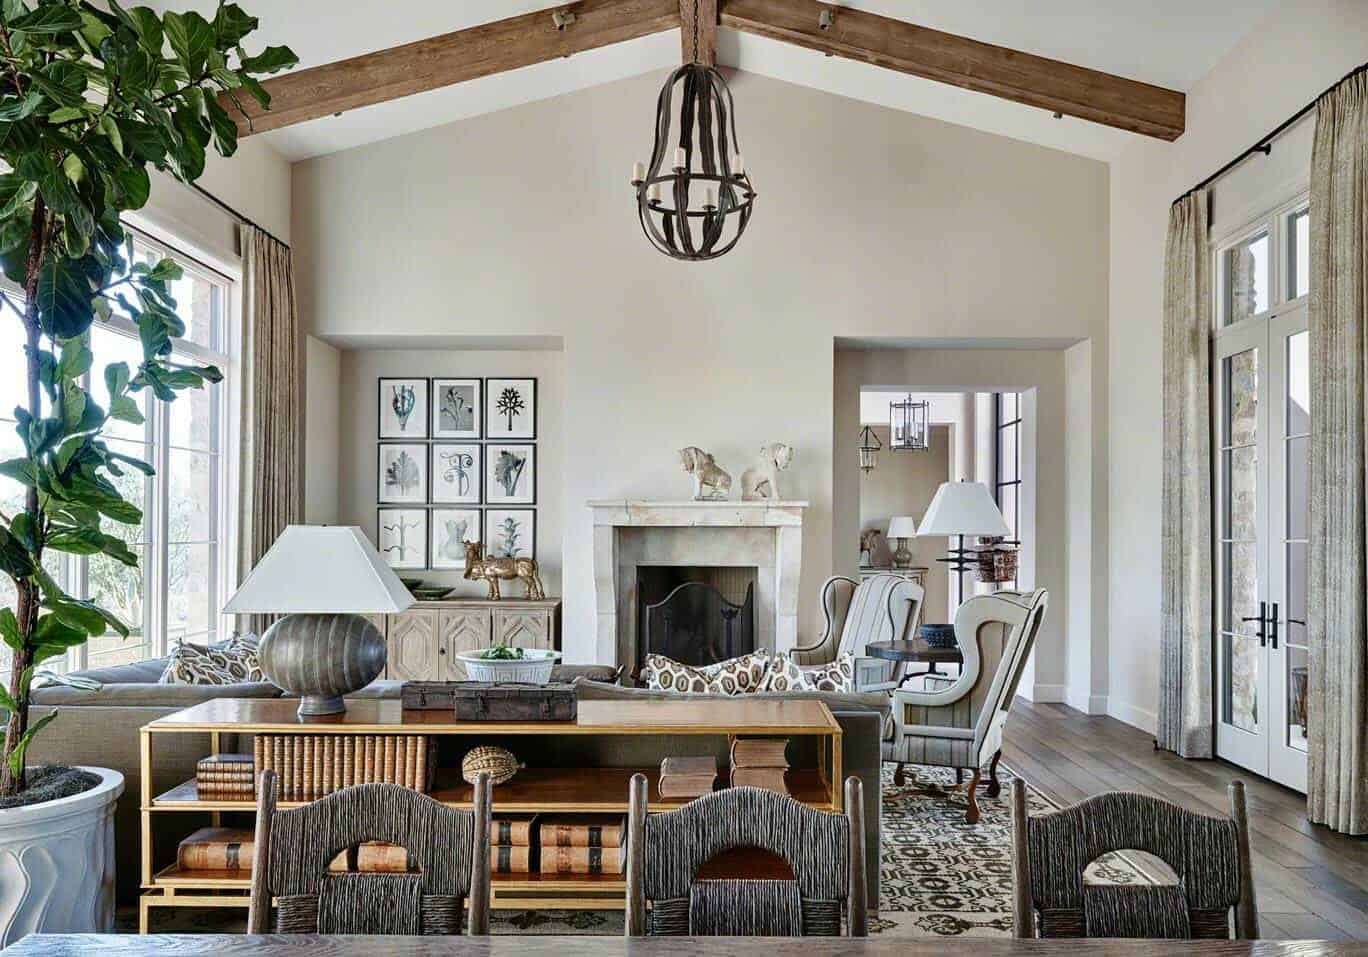 Rustic Eclectic House-David Michael Miller-01-1 Kindesign